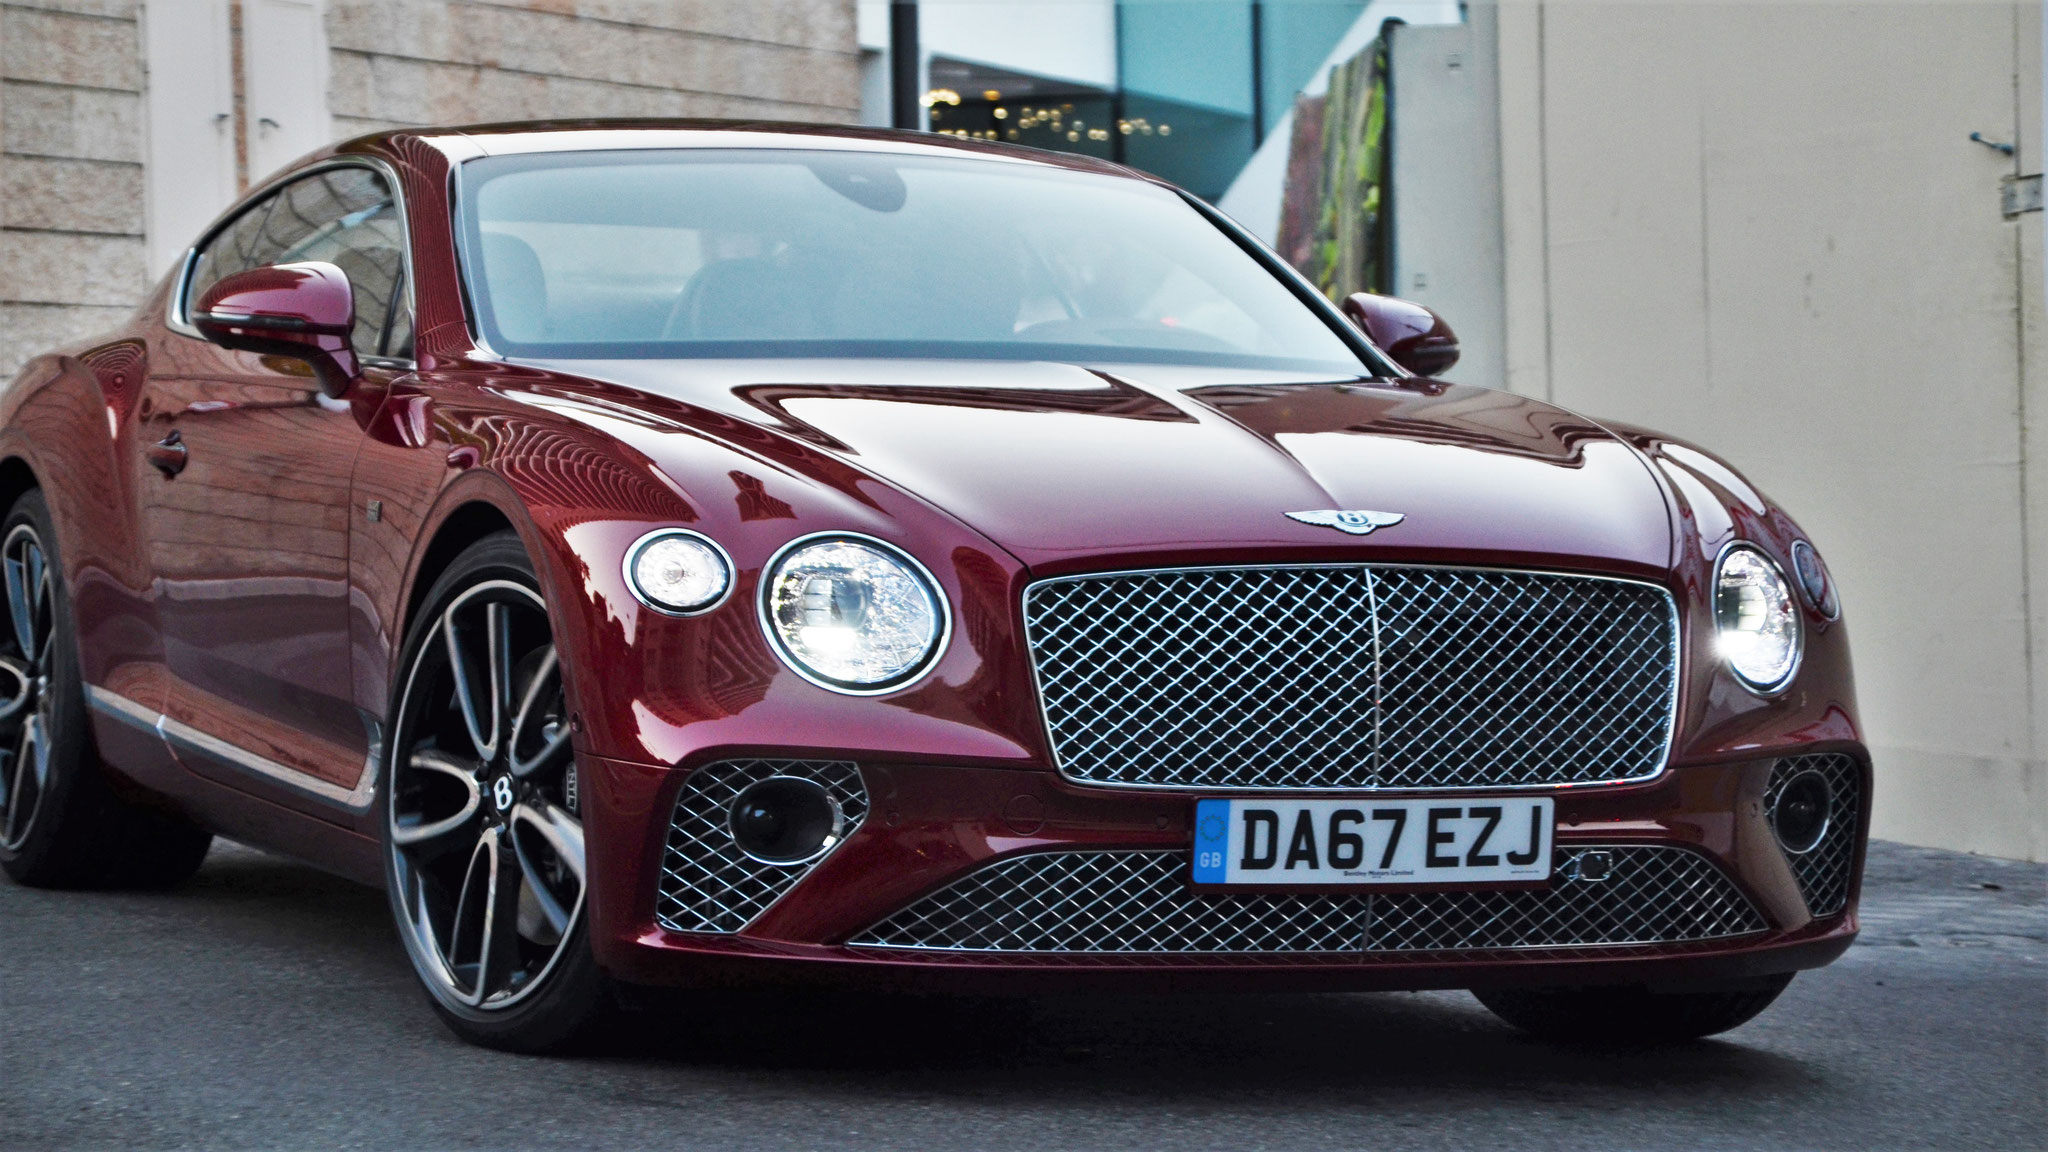 Bentley Continental GT - DA67-EZJ (GB)